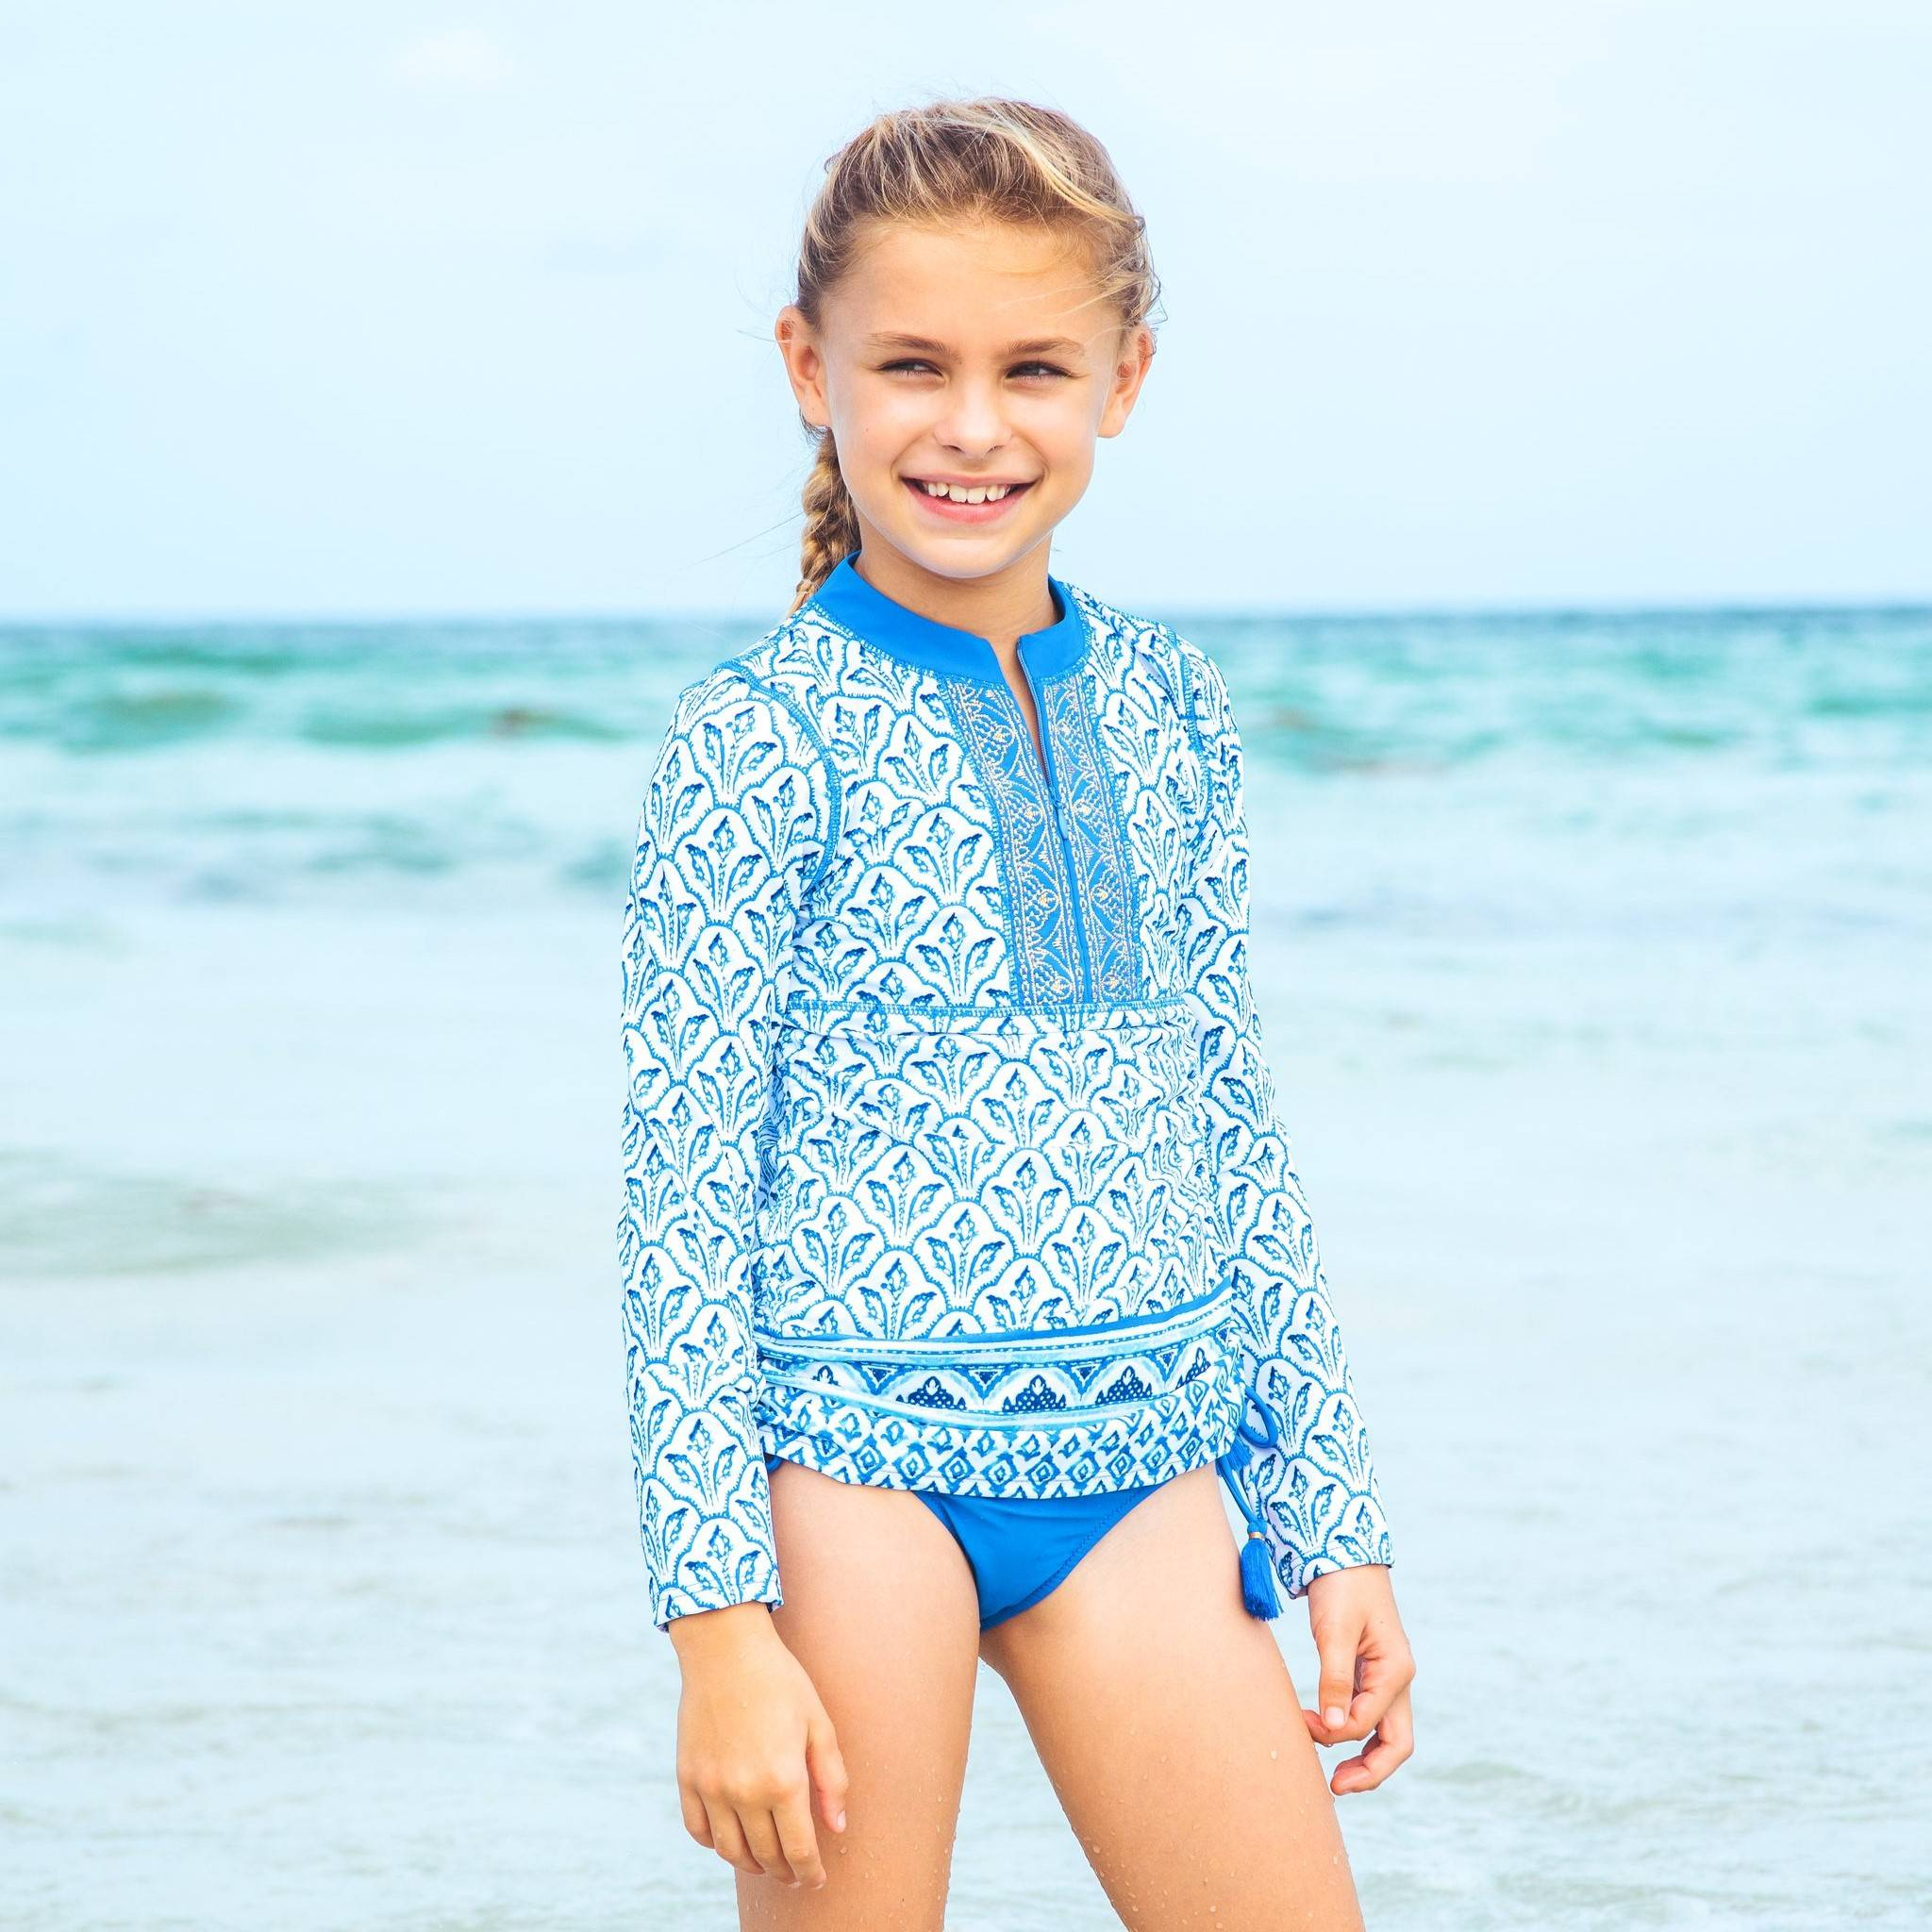 cd4451d8323fd Sun Protective Beachwear & Swimwear | UPF Clothing | Cabana Life